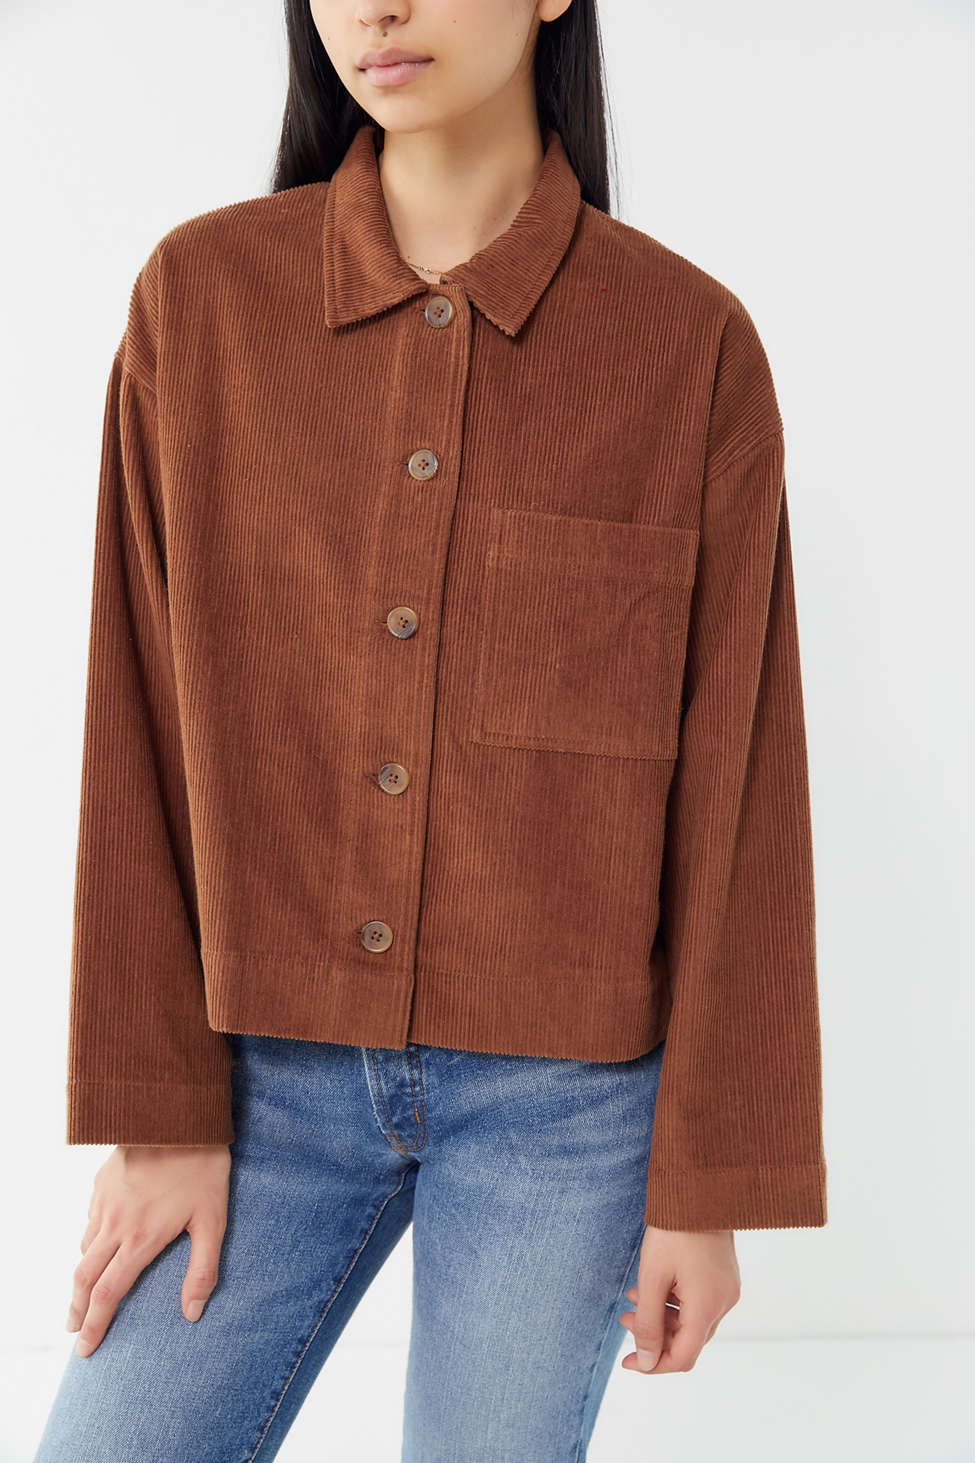 Uo Clark Corduroy Button Down Shirt Jacket Urban Outfitters